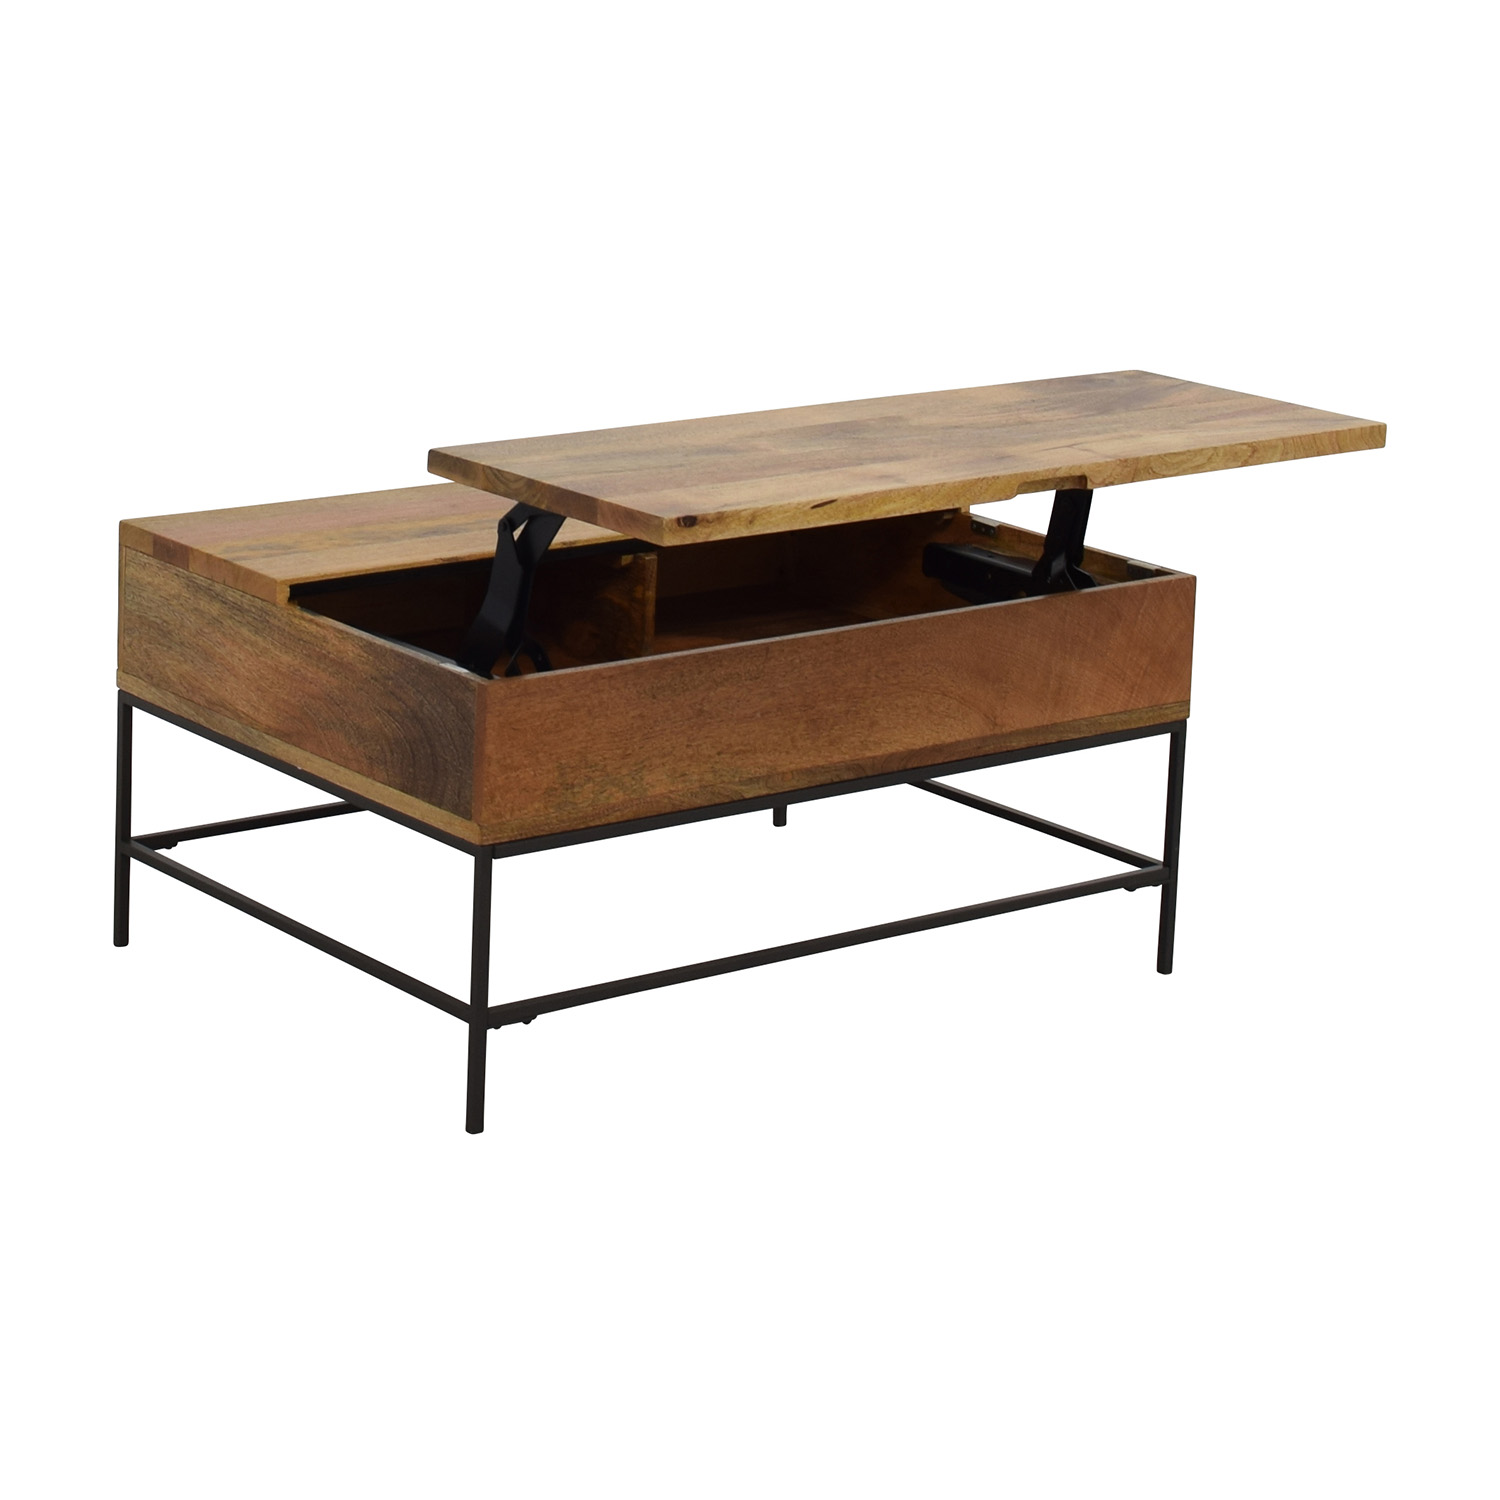 63 off west elm west elm industrial storage coffee for West elm industrial storage coffee table